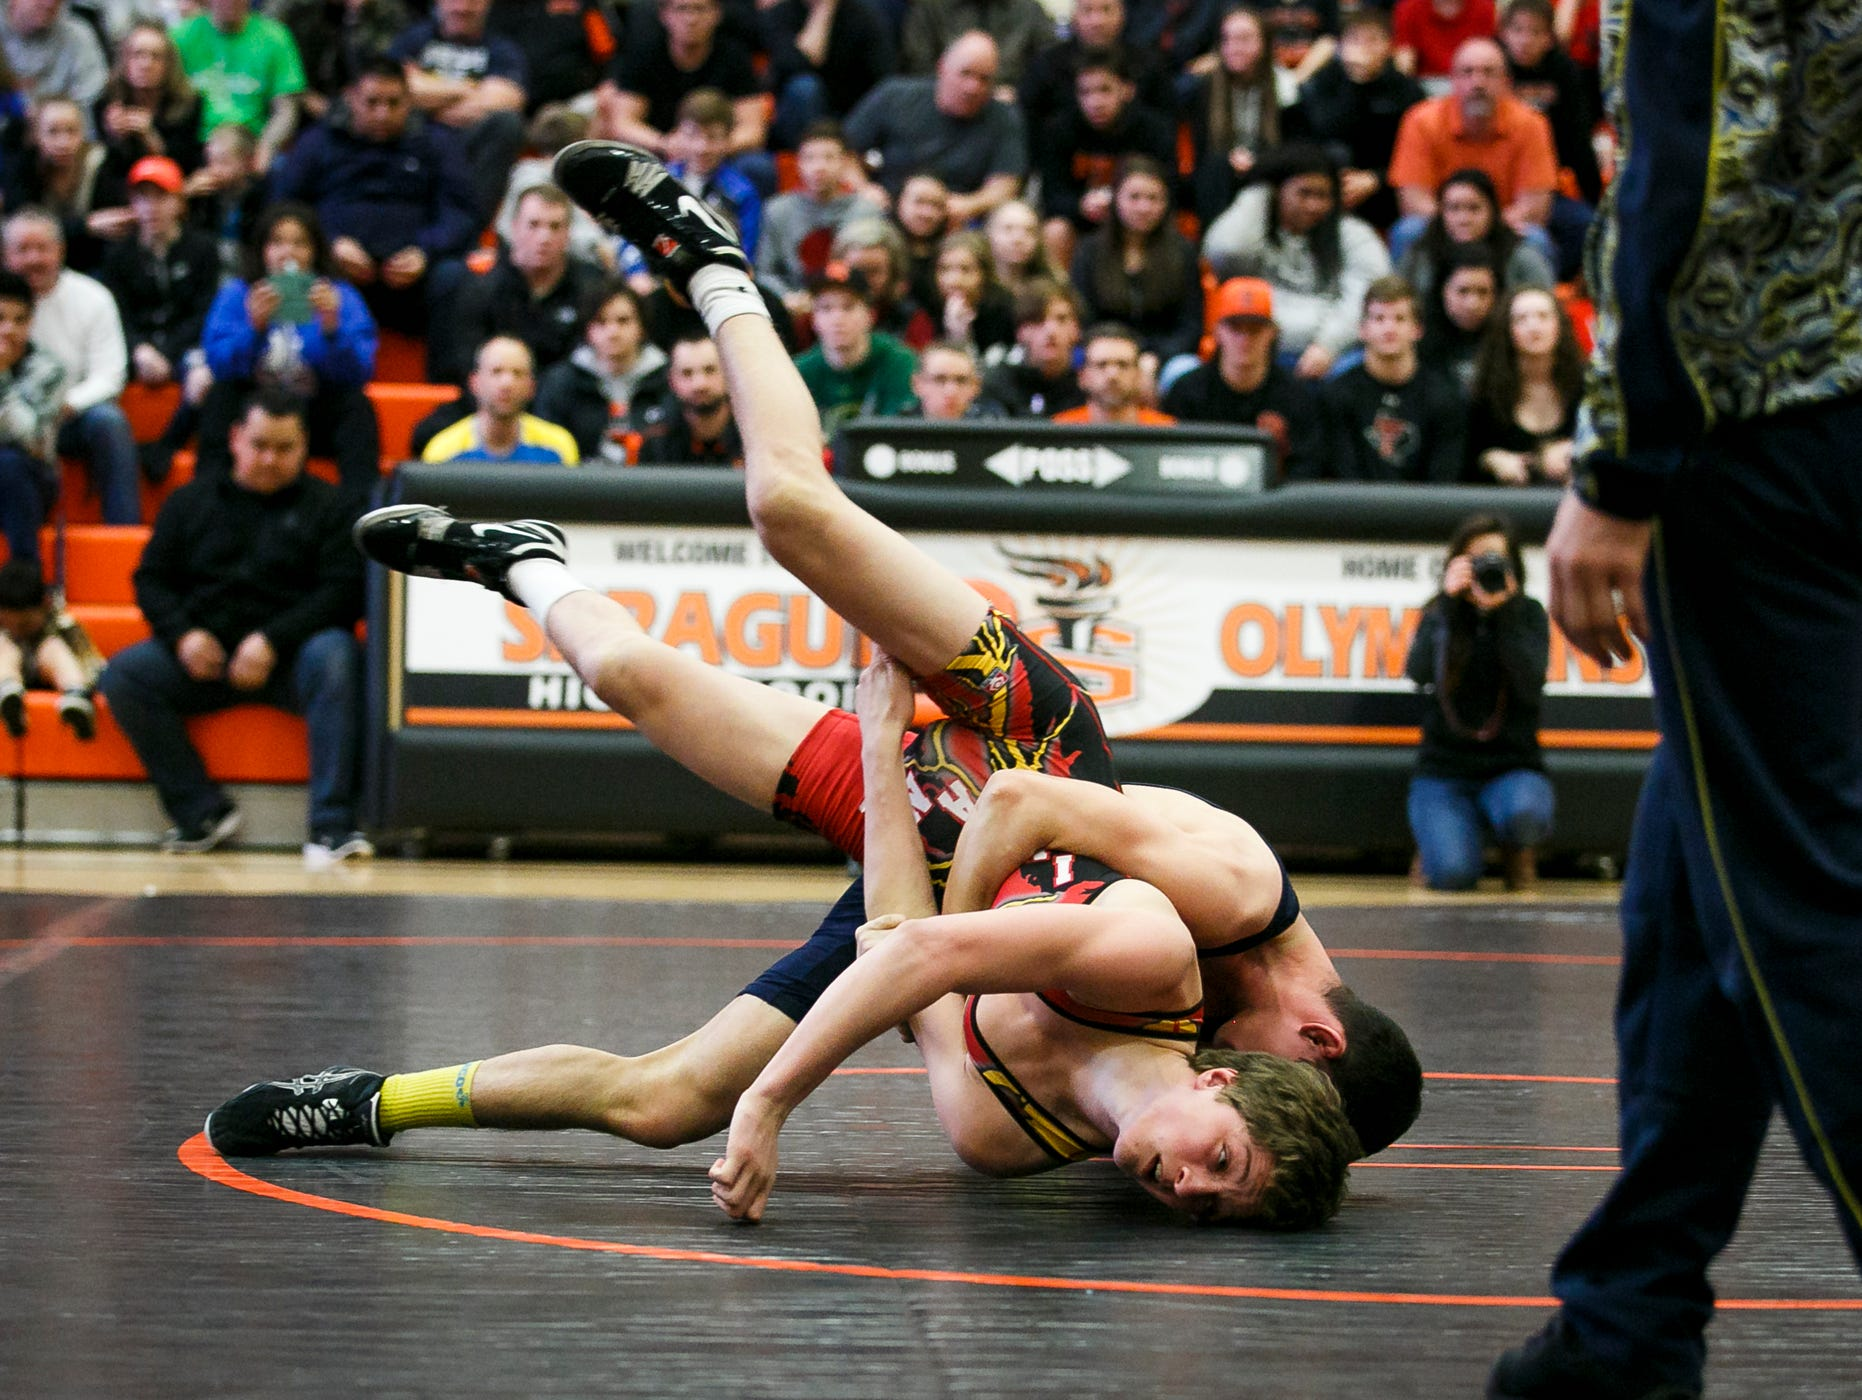 Ukraine's Andrii Dzhelep tries to pin Sprague's Daniel McClung in a match at Sprague High School on Tuesday, March 8, 2017. McClung was the Oregon state runner up in the 126 pound division in 2017; Dzhelep is a 2016 cadet world champion in the 17 and under division.